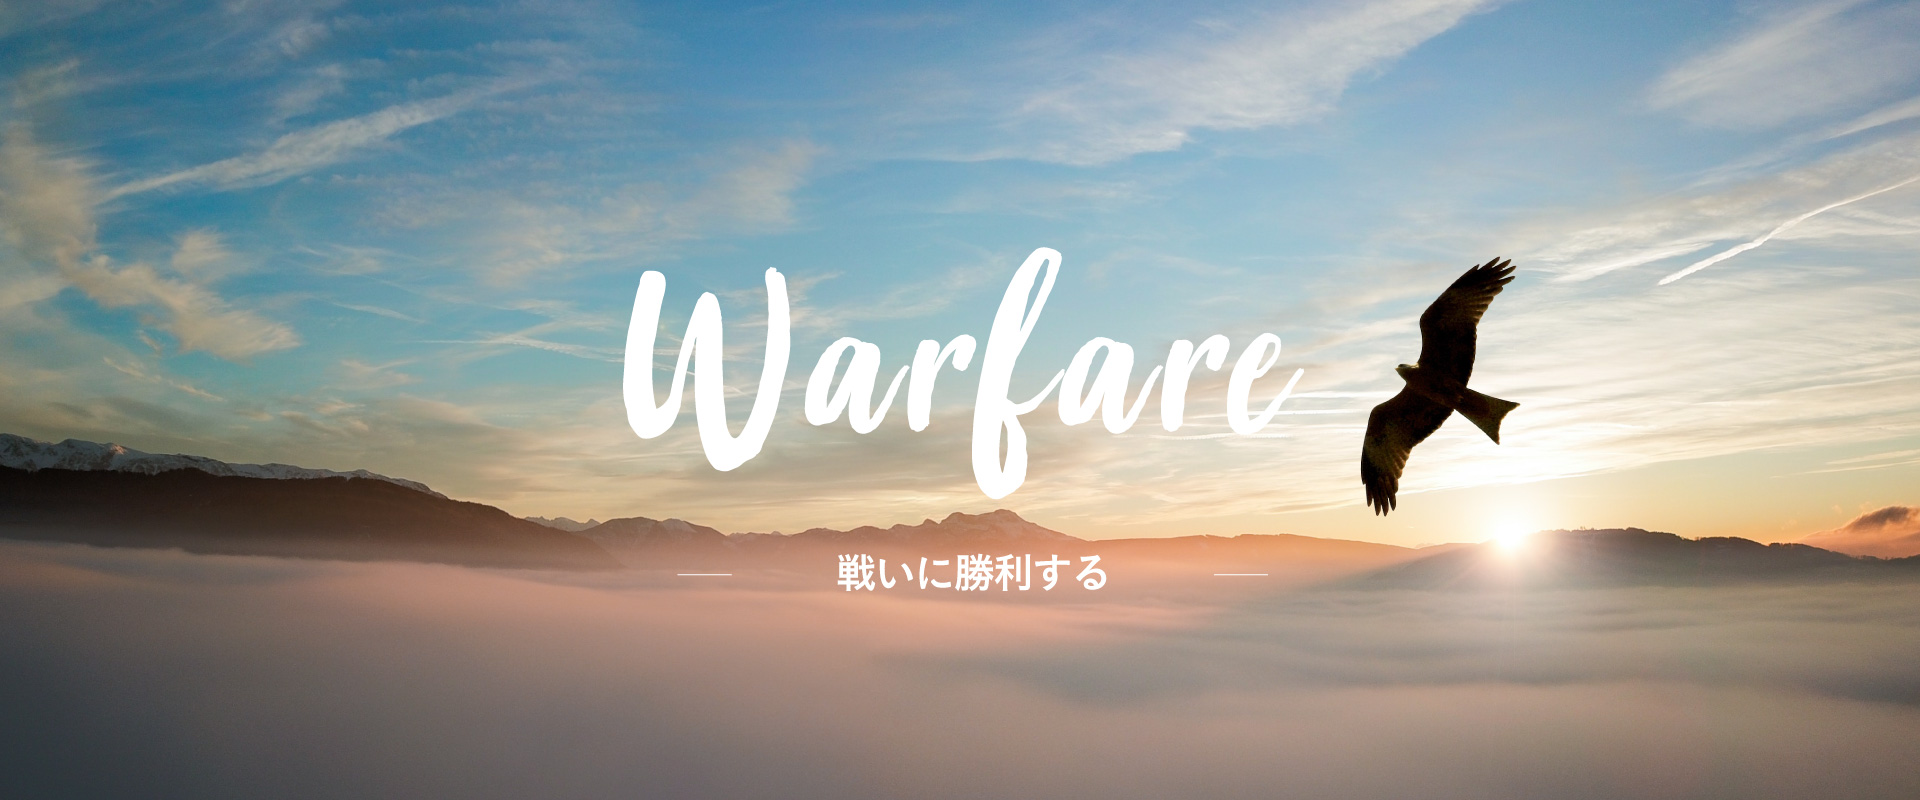 New Hope Tokyo Message Series June 2018 - Warfare 戦いに勝利する